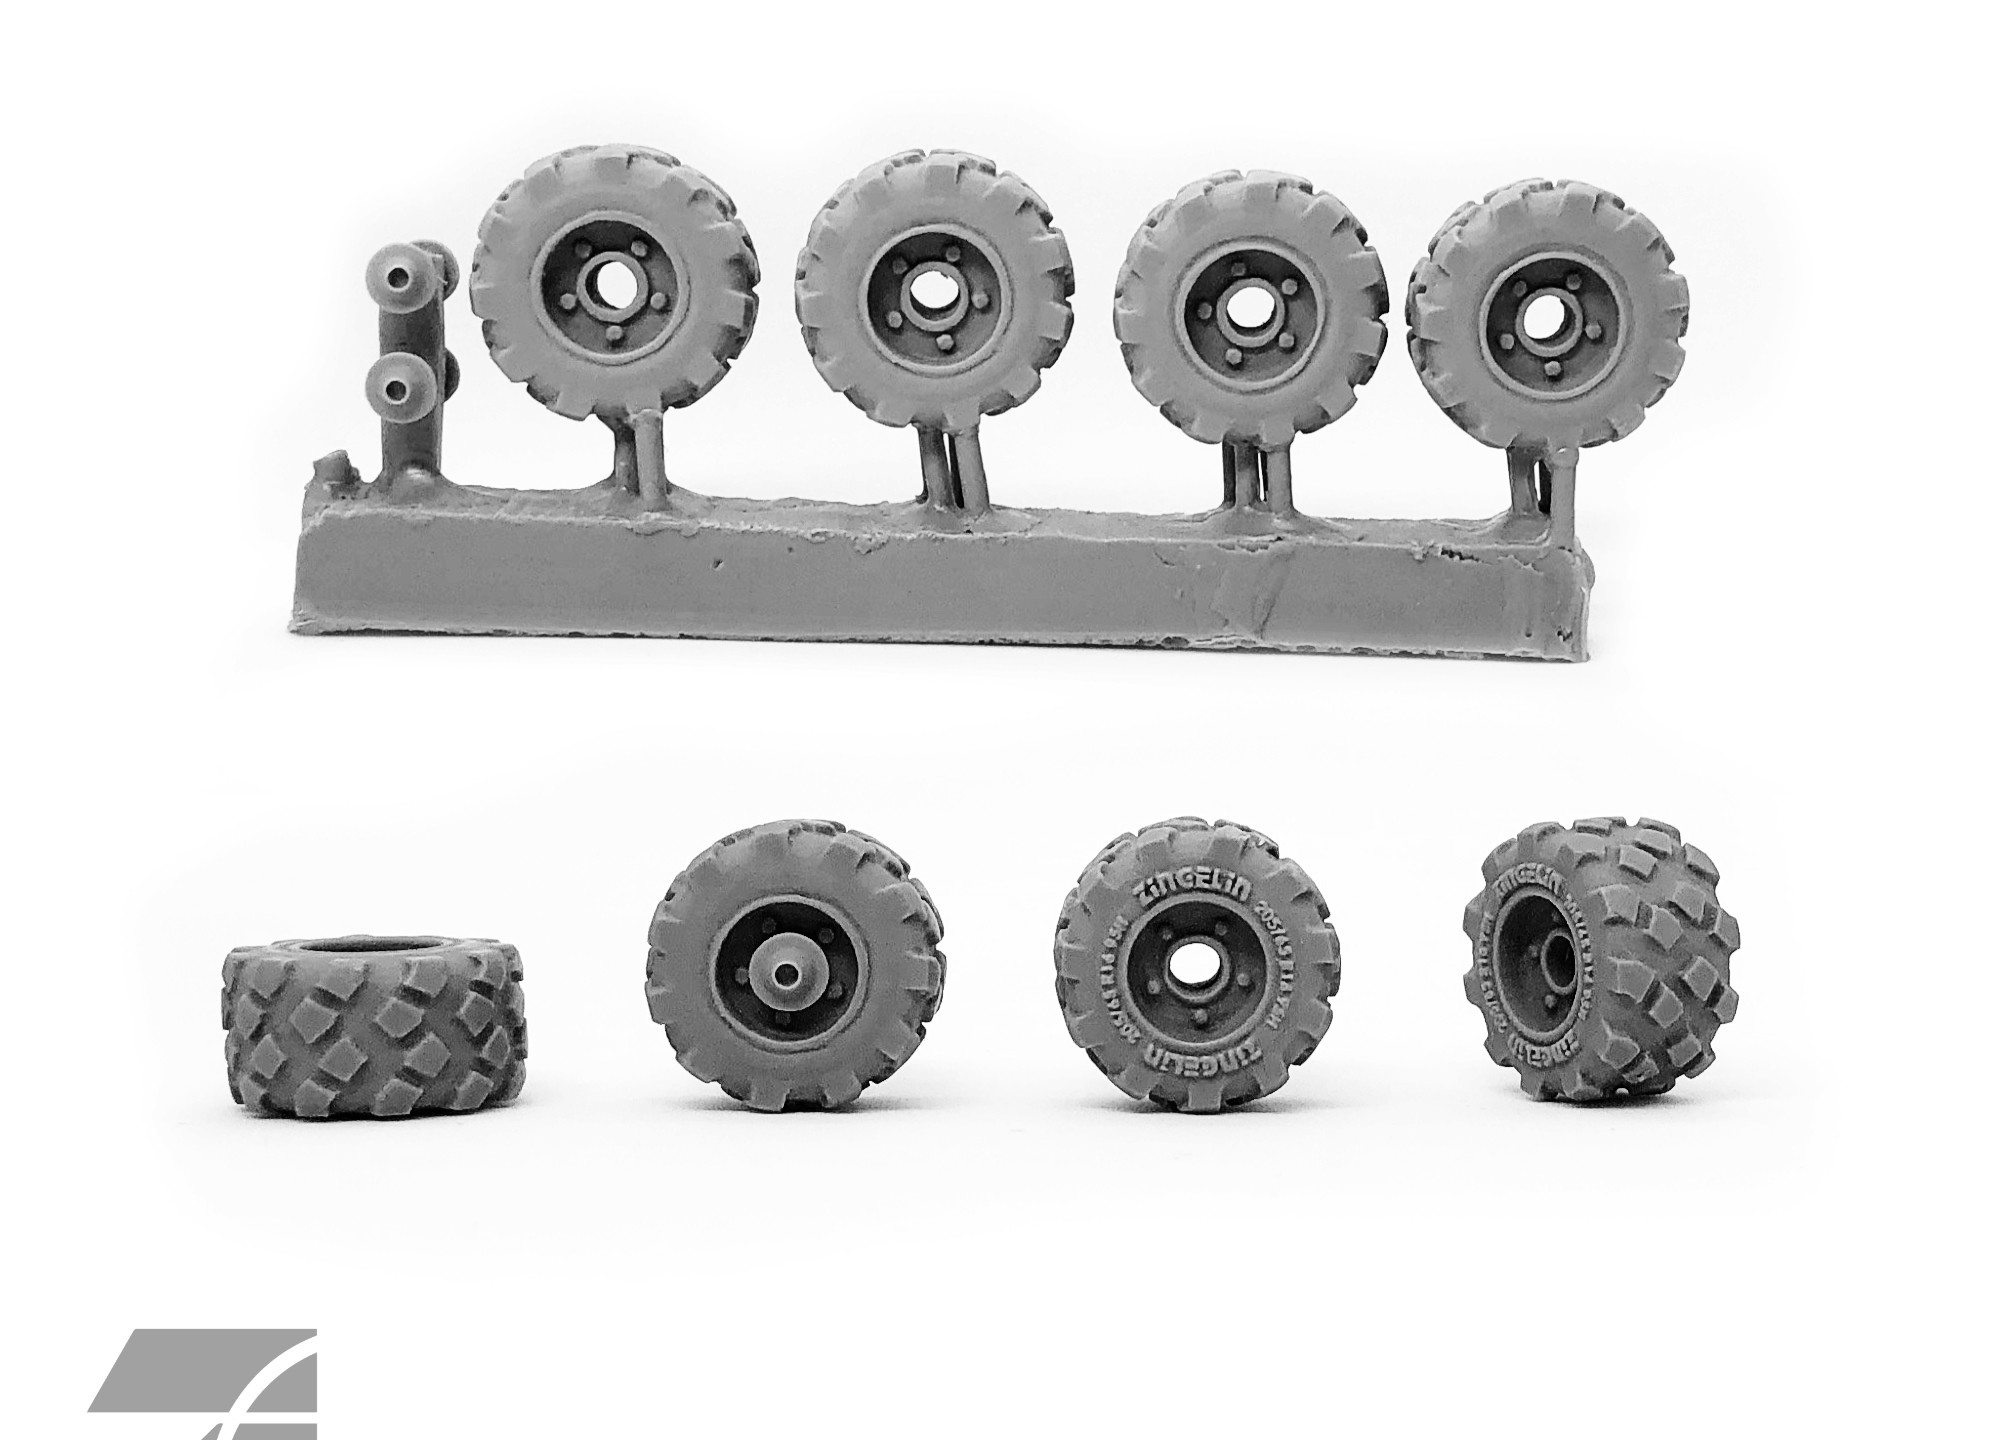 19mm Military